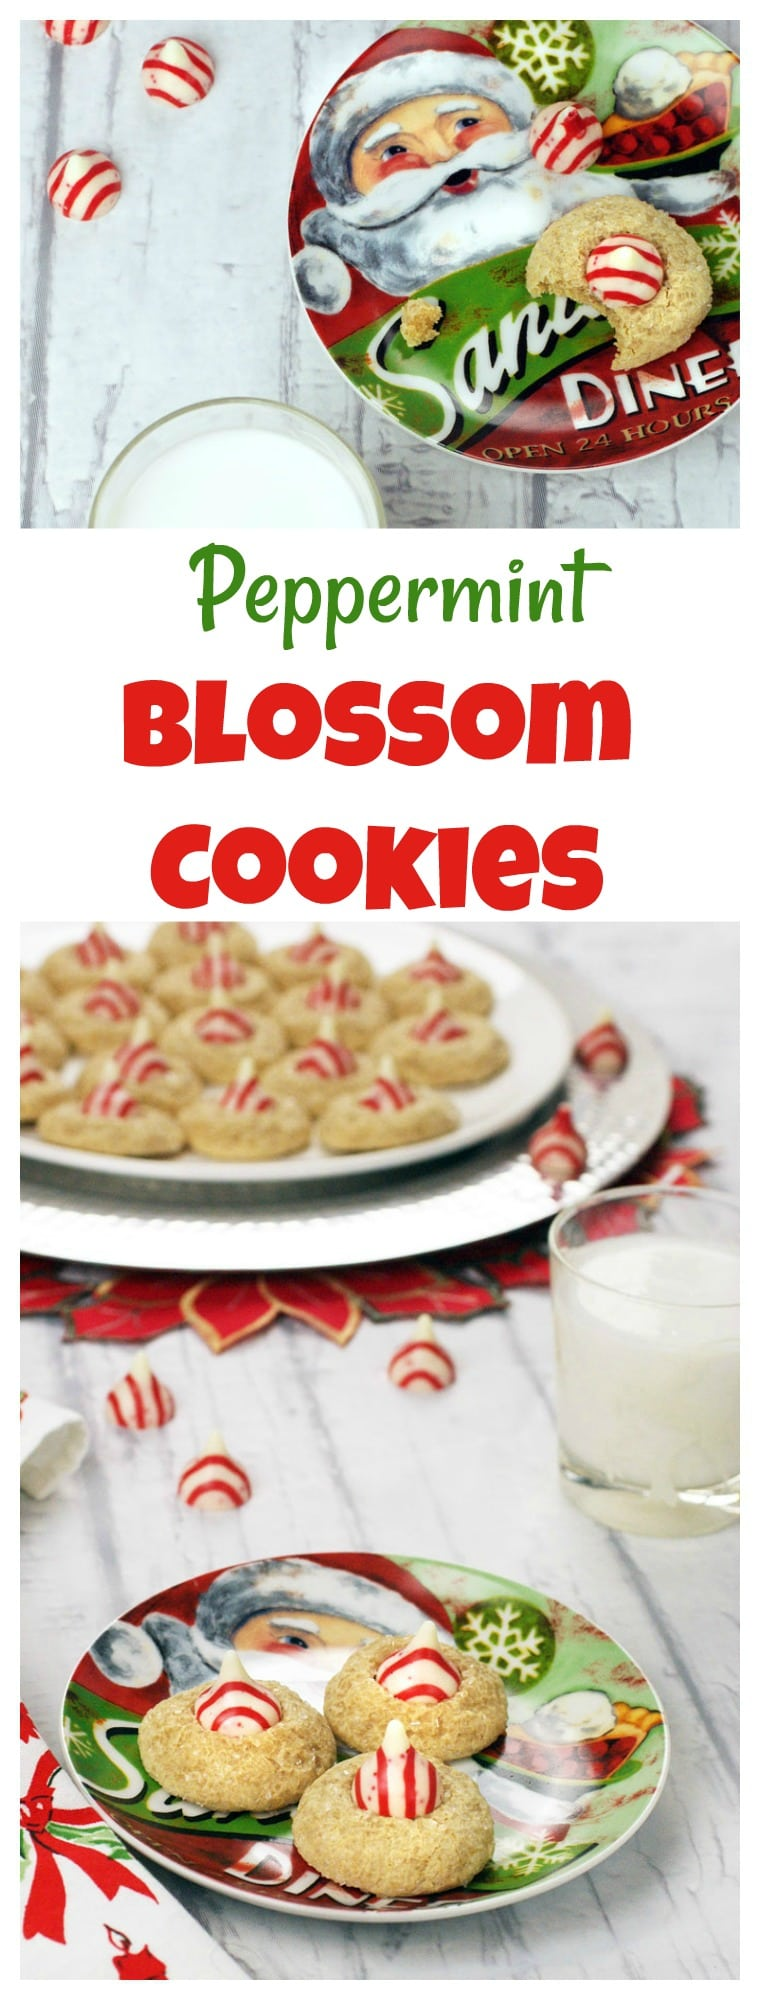 Baking holiday blossom cookies for your Christmas cookie swap? You'll love these Easy Gluten-Free Peppermint Blossom Cookies. This Hershey blossom cookies recipe uses white chocolate Kisses. Dairy free and gluten free. Can be made under 1 hour. #glutenfree #dairyfree #cookies #kisses #herseyskisses #christmas #homemadegifts #cookieexchange #cookieswap #peppermint #blossomcookies #recipe #easy #recipeoftheday #easyrecipes